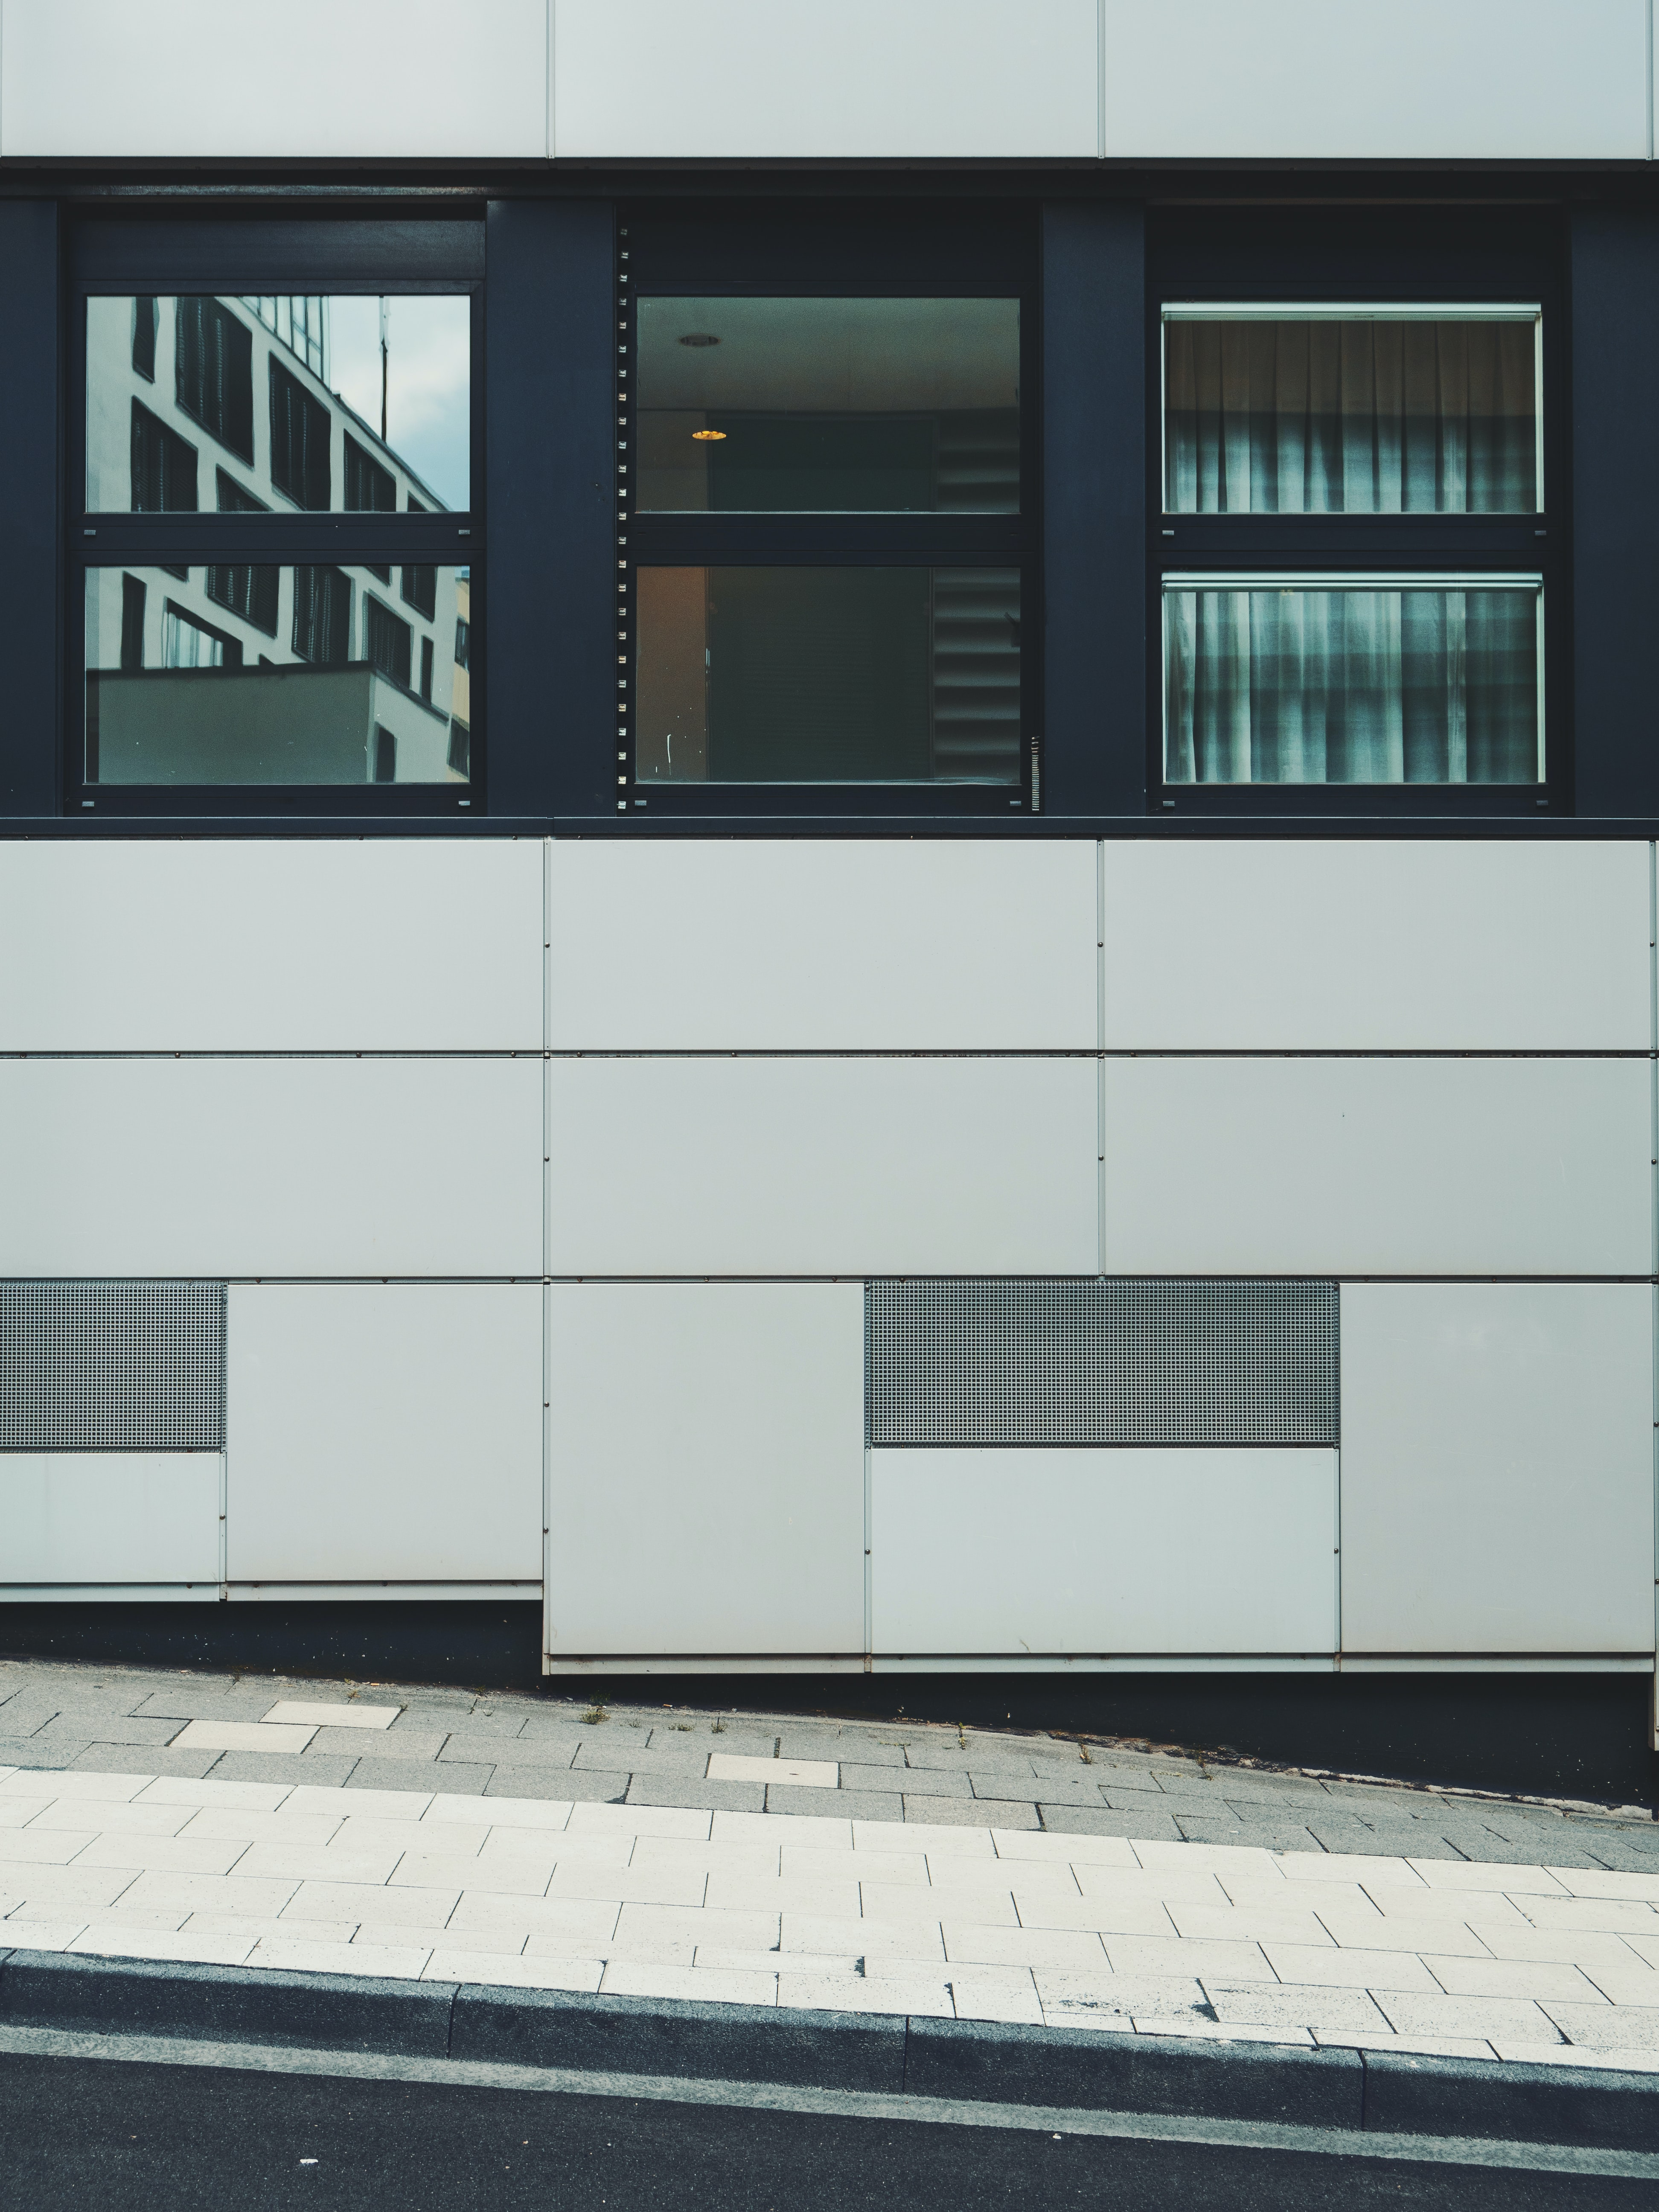 white and black concrete building at daytime